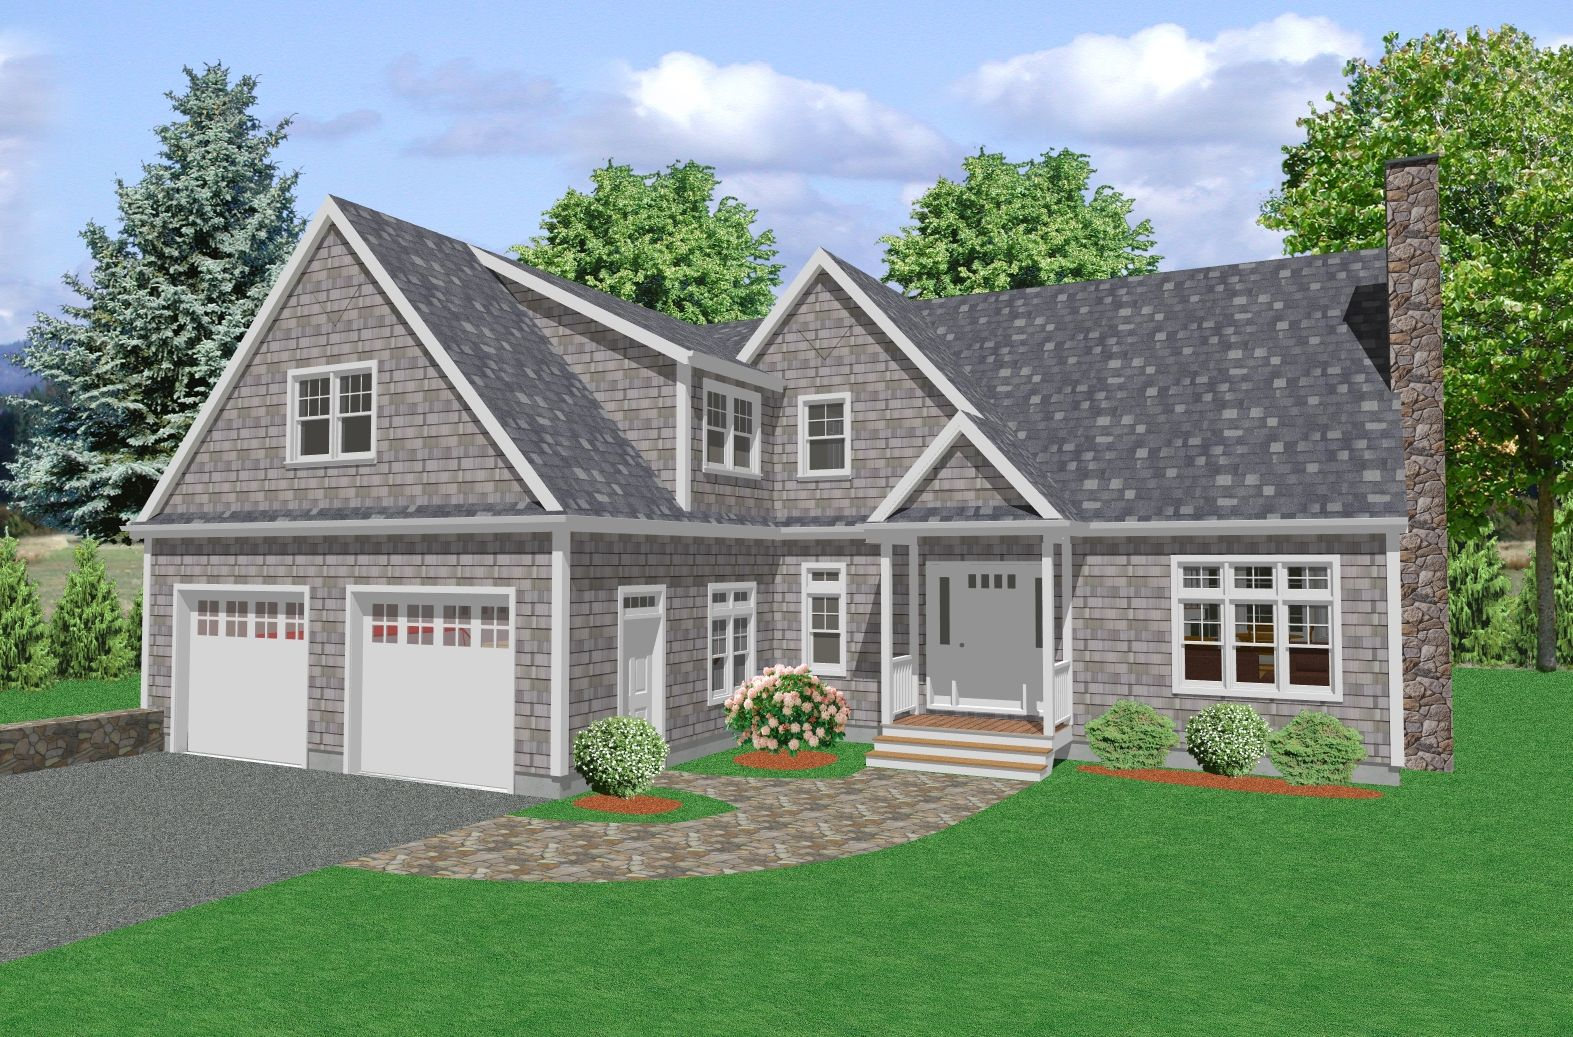 Cape cod style homes house plan two story traditional for Cape style house plans